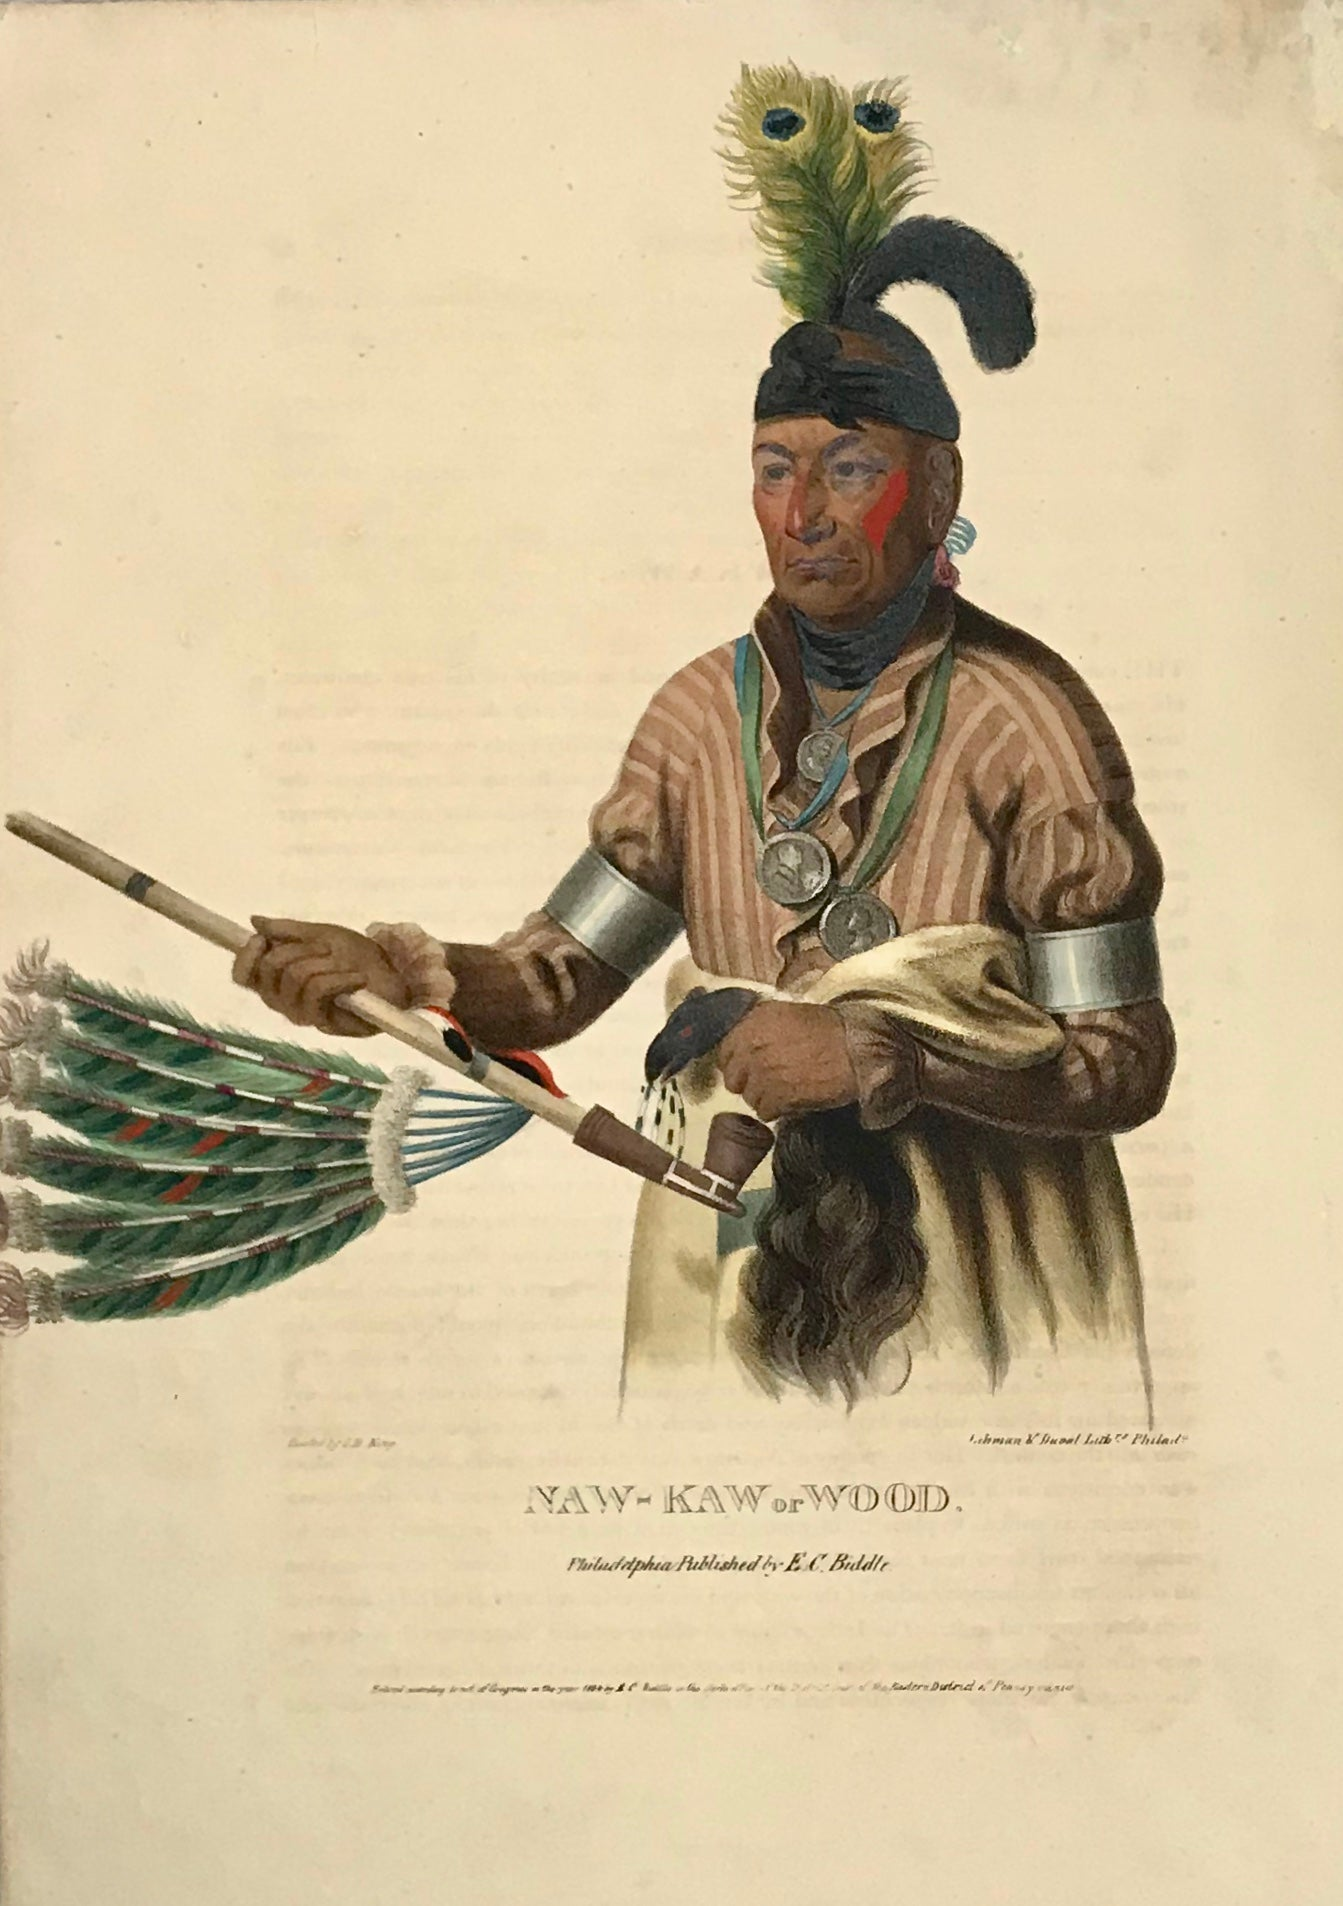 """Naw-Kaw or Wood"" Lithograph. Original hand coloring Painting by Charles Bird King (1785-1862) Published in: ""History of the Indian Tribes of North America"" Authors: Thomas Loraine McKenny (1785-1859) and James Hall (1793-1868)"